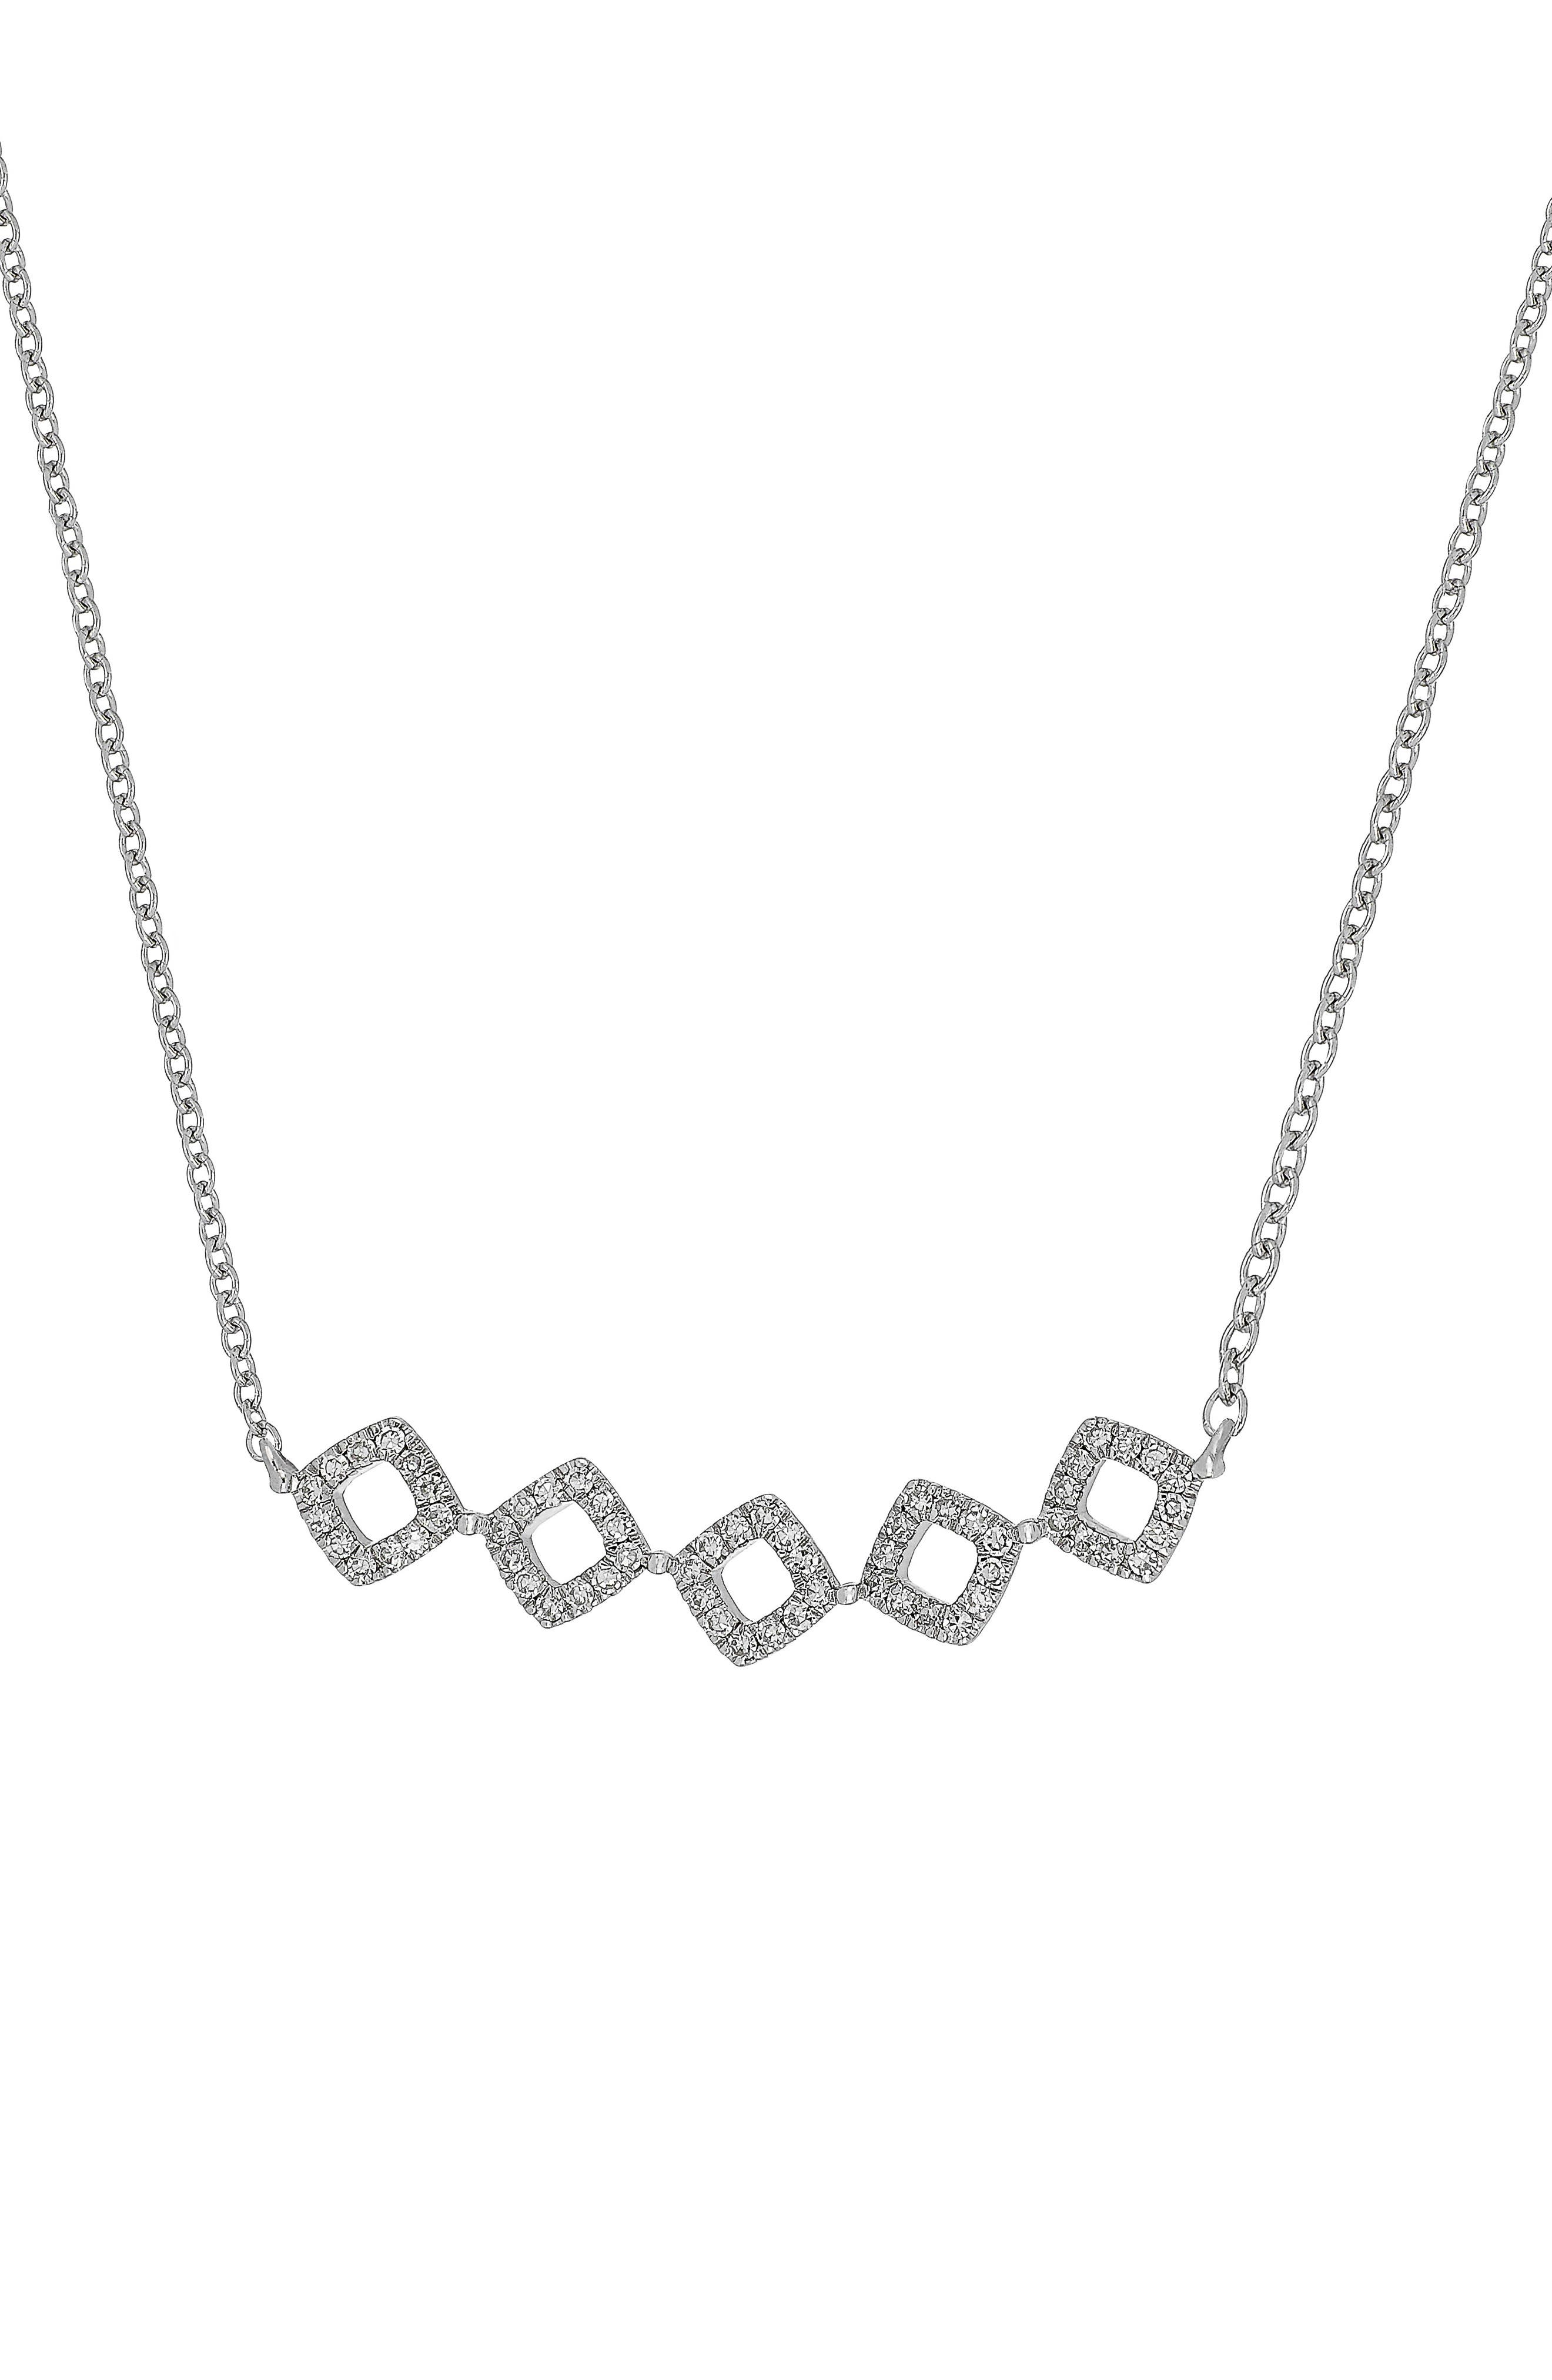 Carrière Diamond Shape Frontal Necklace,                         Main,                         color, Silver/ Diamond